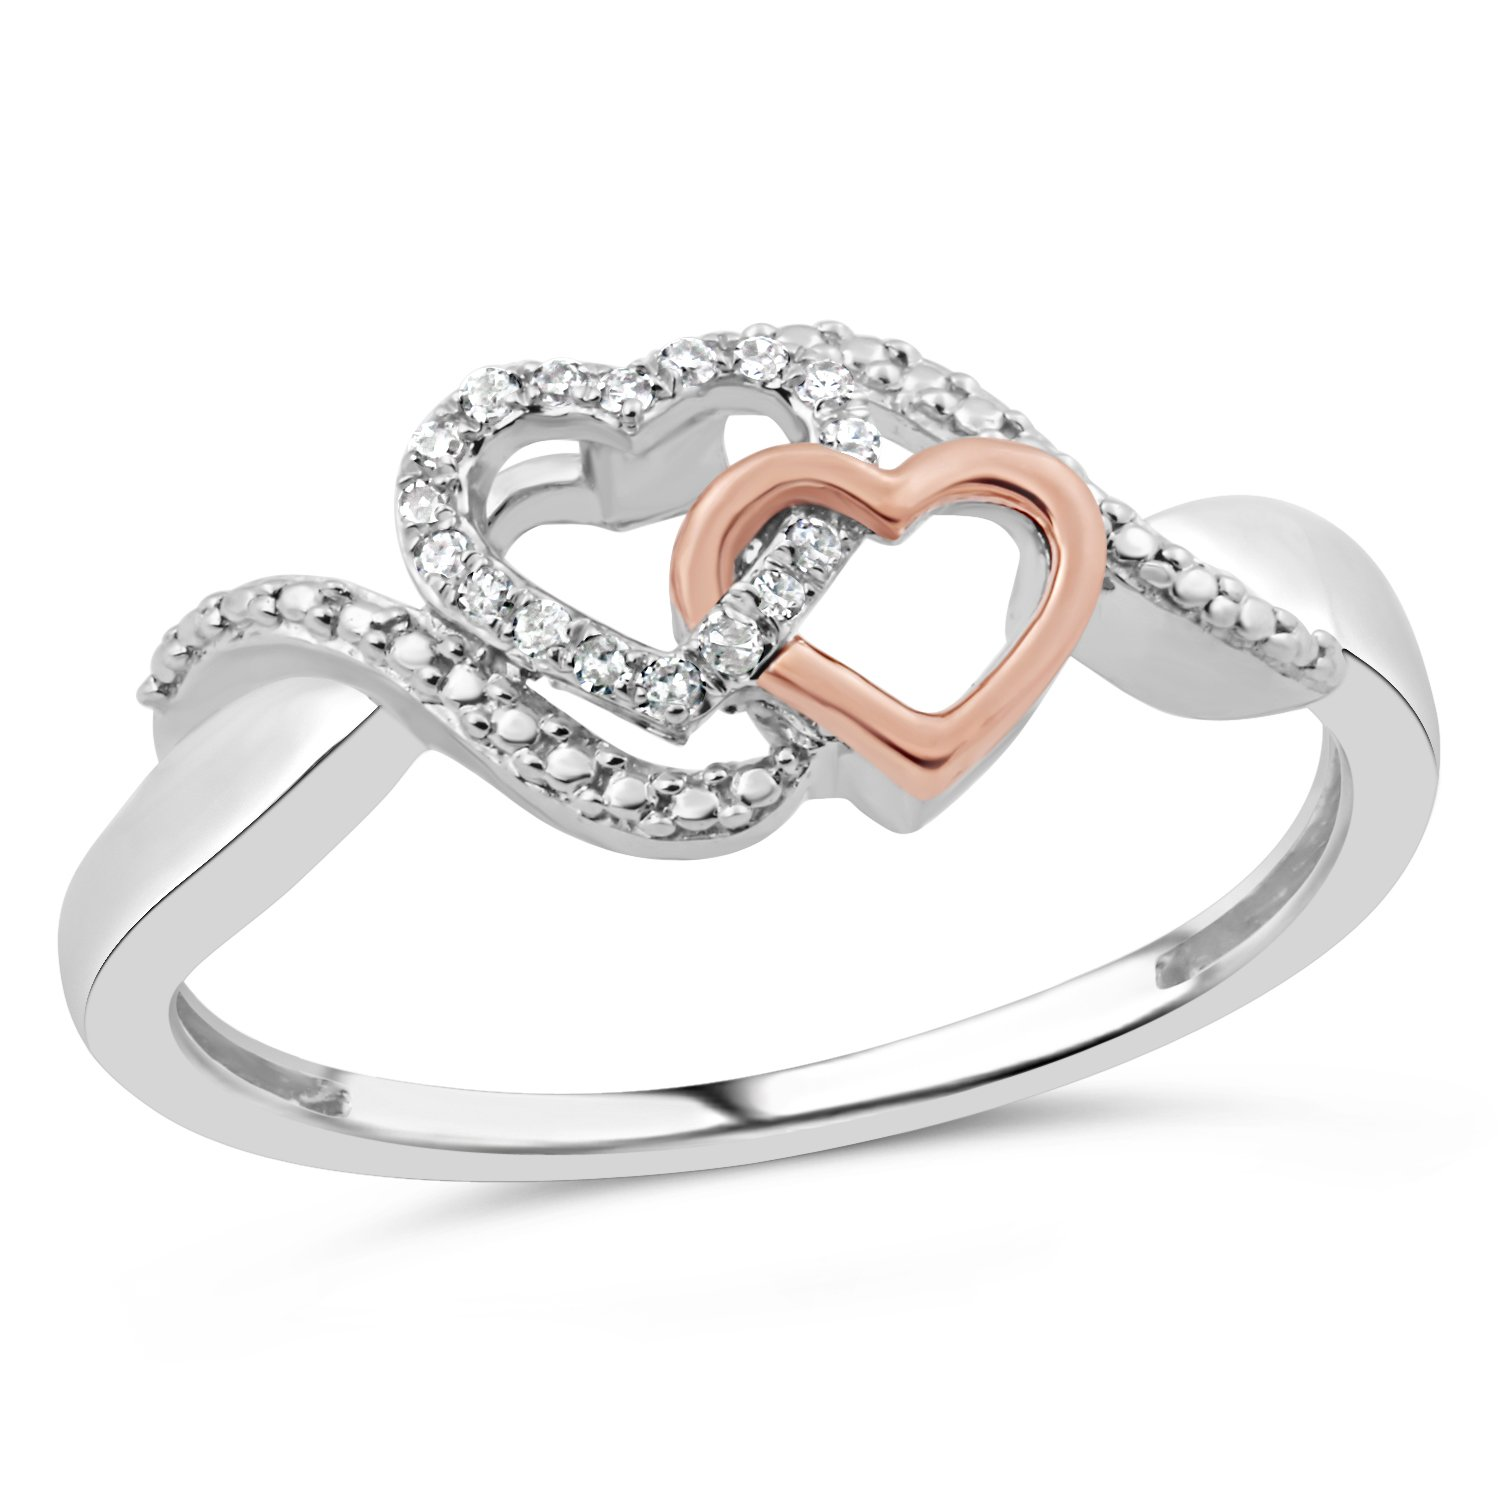 Diamond Promise Ring in 10k Rose Gold and Rhodium Plated Sterling Silver 1/20 cttw